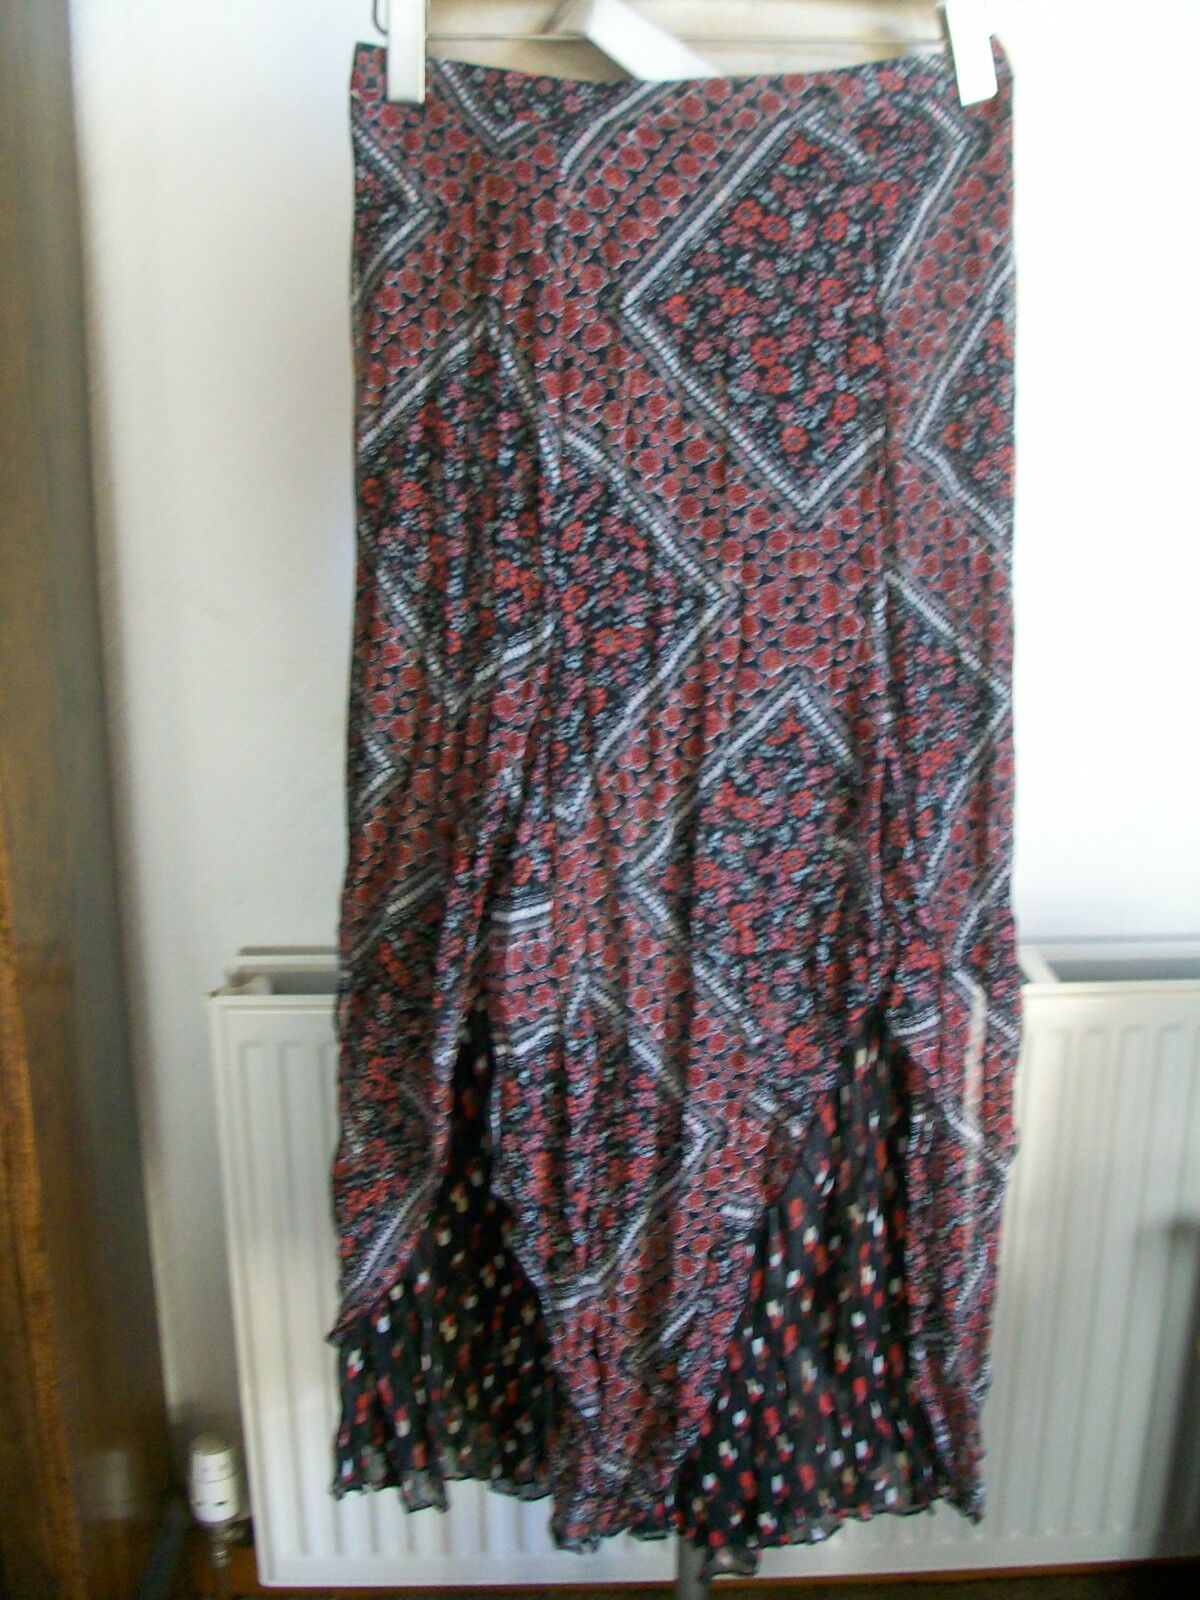 Crinkle Red Mix Layered Tiered Skirt, Size 16, Waist 35  Length 36  M&S, BNWT